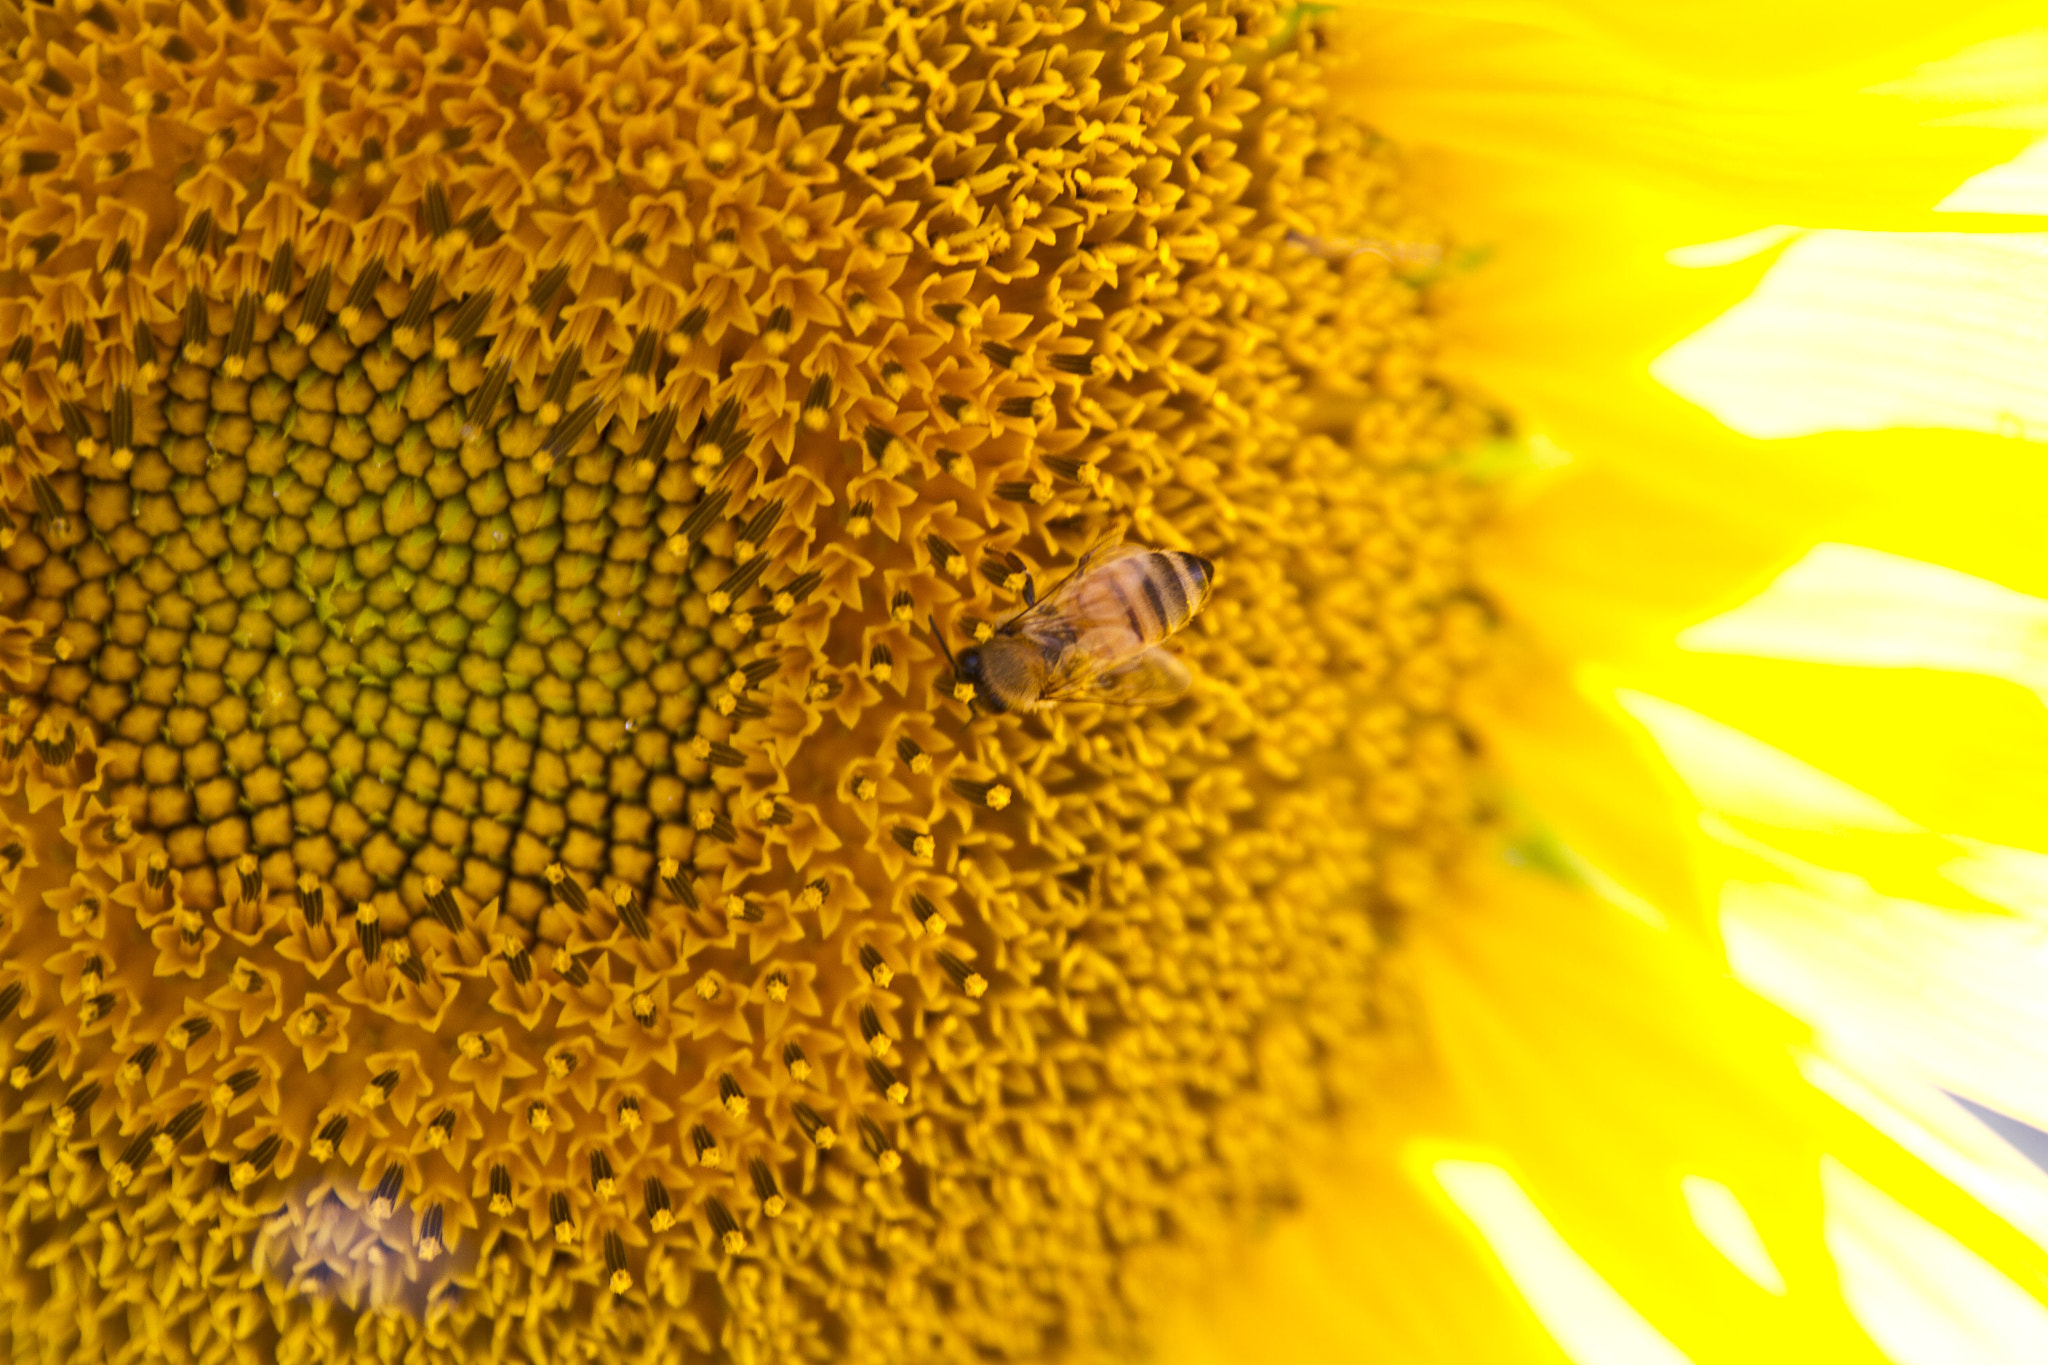 Photograph Sunflower and Visitor by Ashe  on 500px